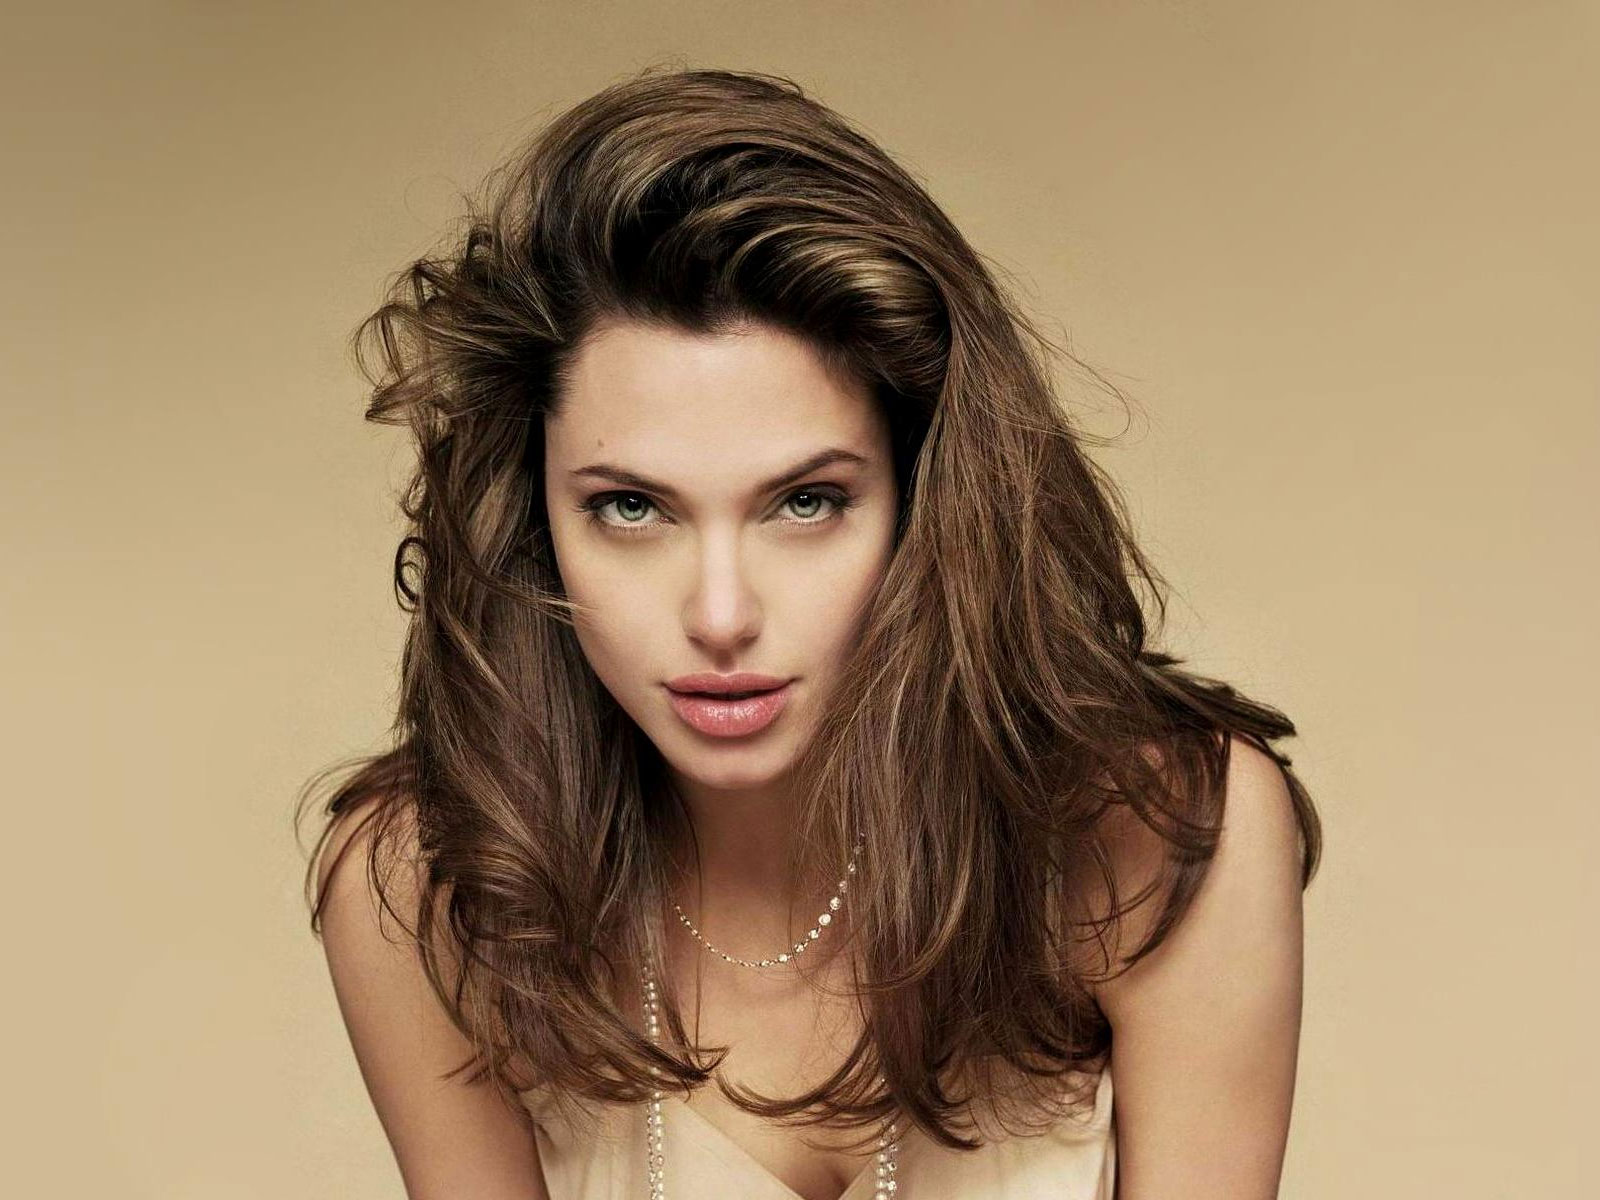 Angelina Jolie Hd Wallpapers: Hollywood All Stars: Angelina Jolie Hd Wallpapers2012